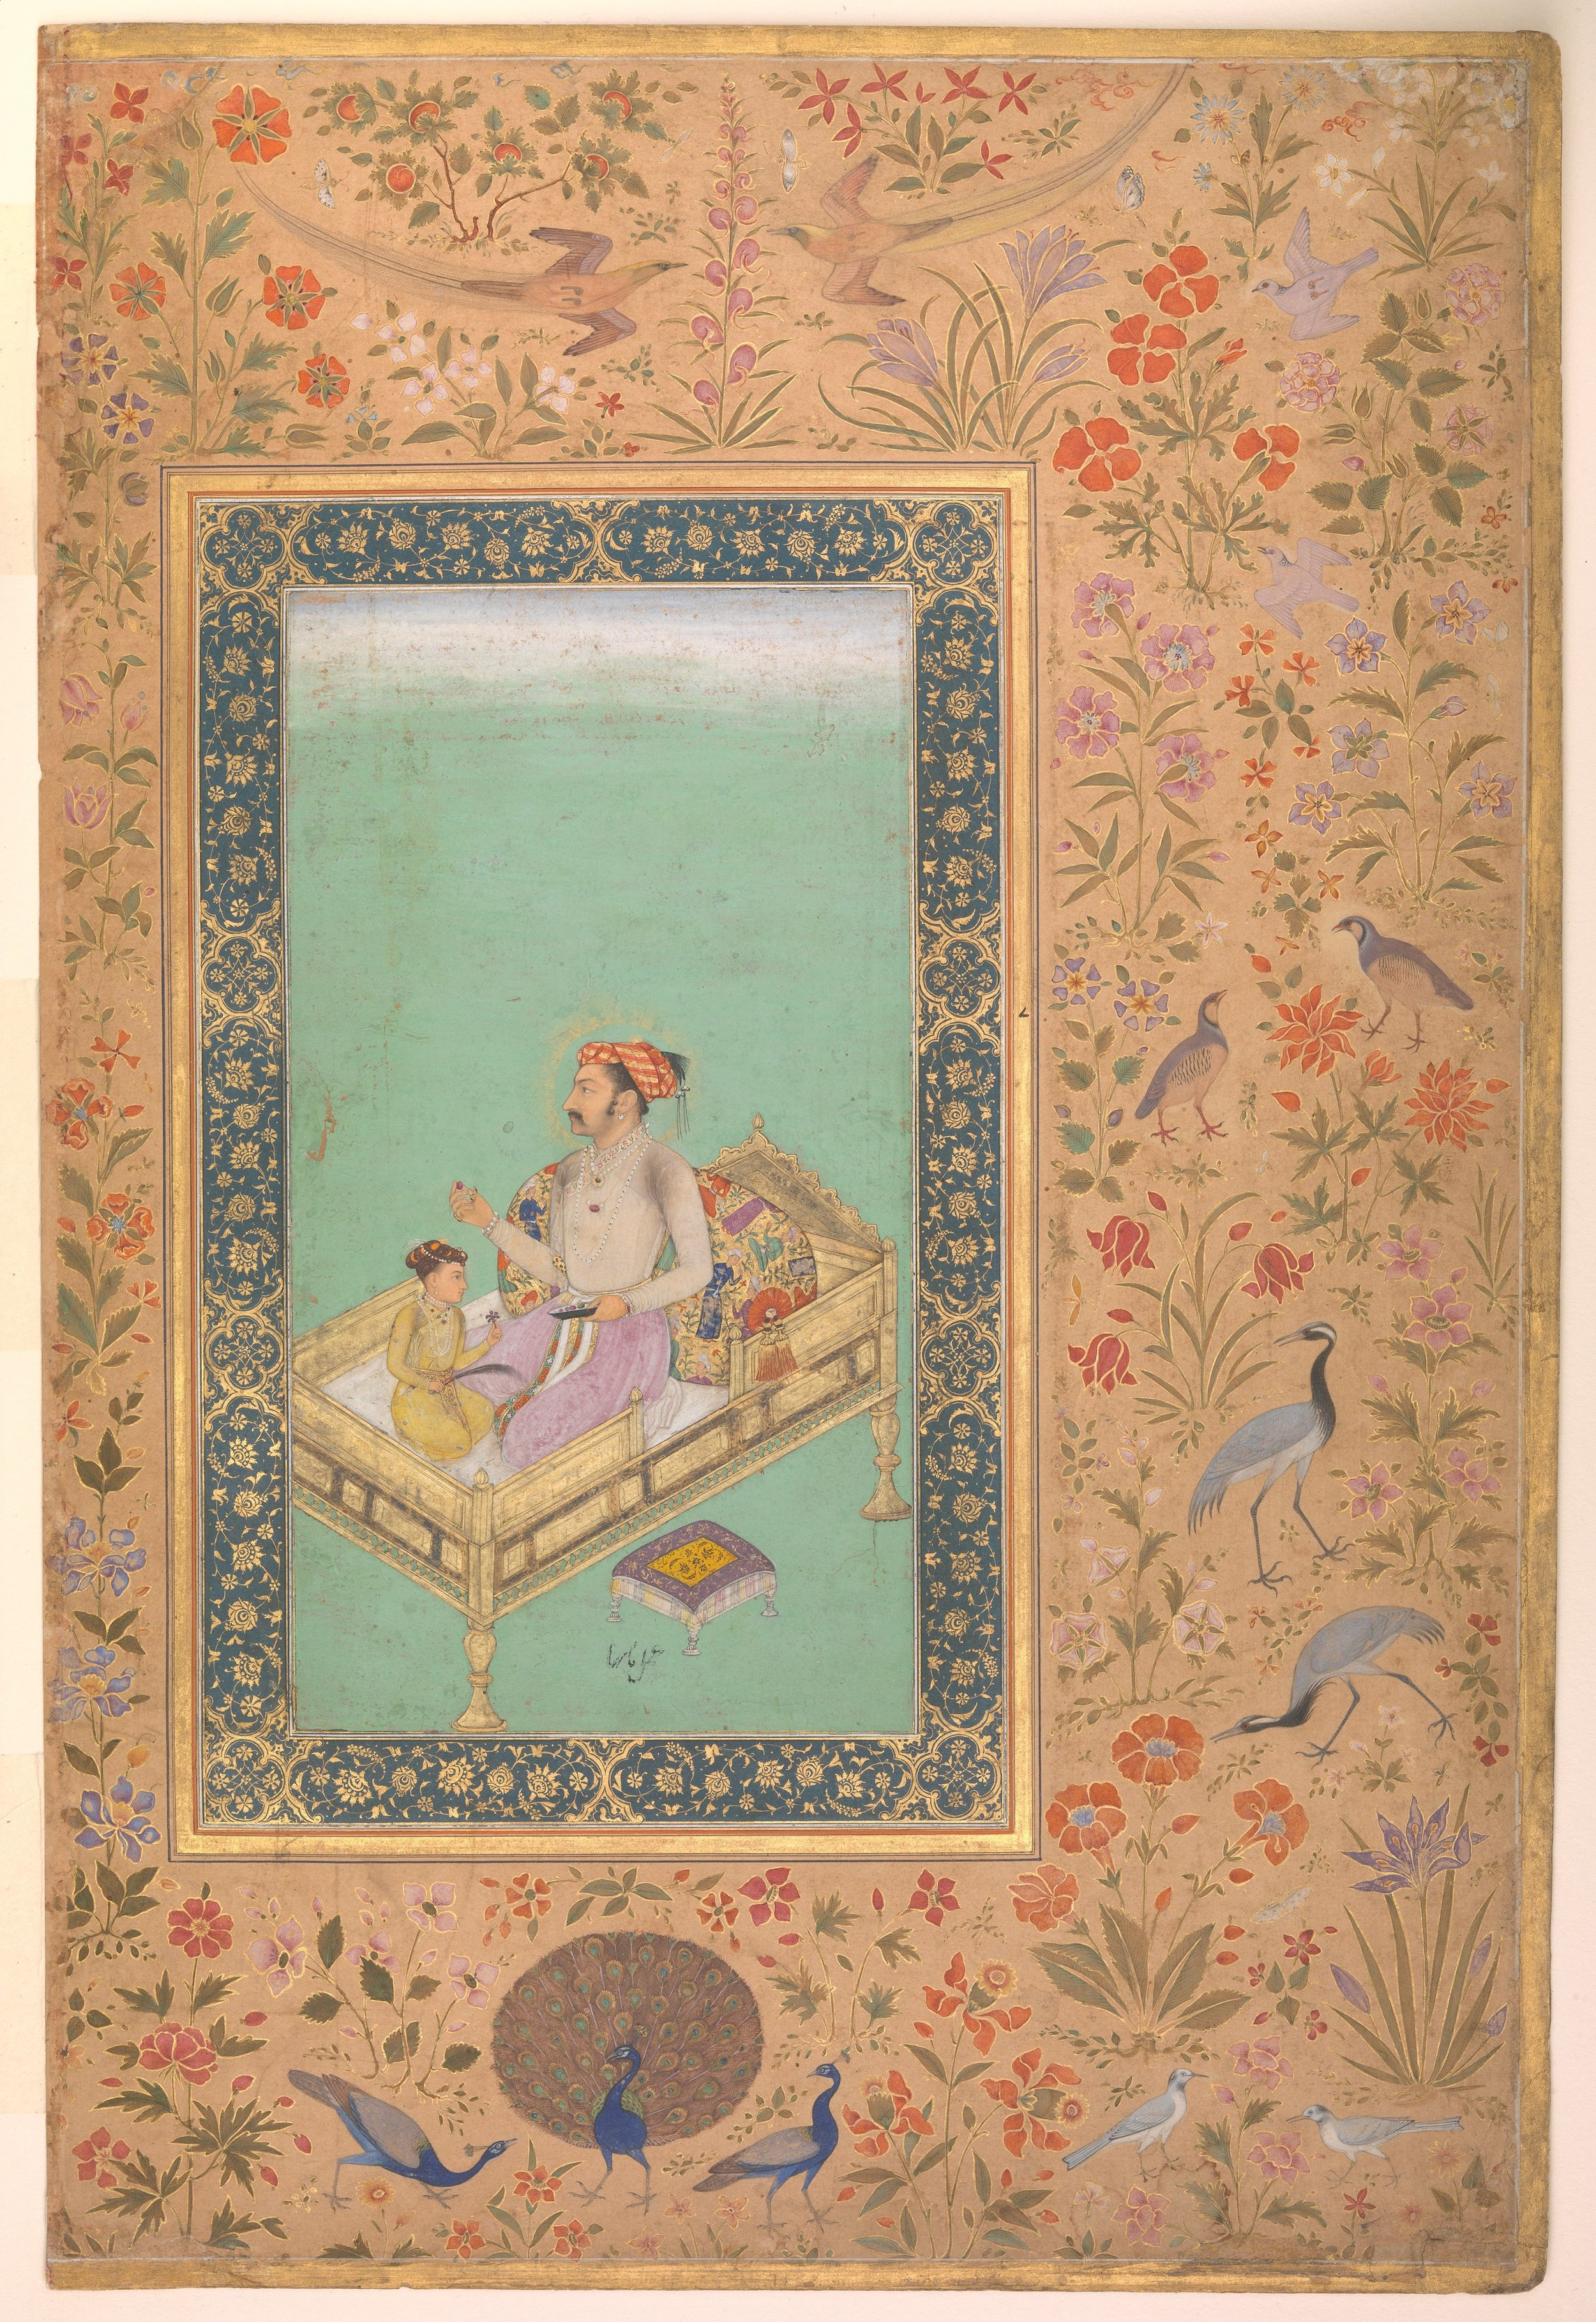 The Emperor Shah Jahan with His Son Dara Shikoh , folio from the Shah Jahan Album, circa 1620. Now a part in the collection of The Metropolitan Museum of Art.